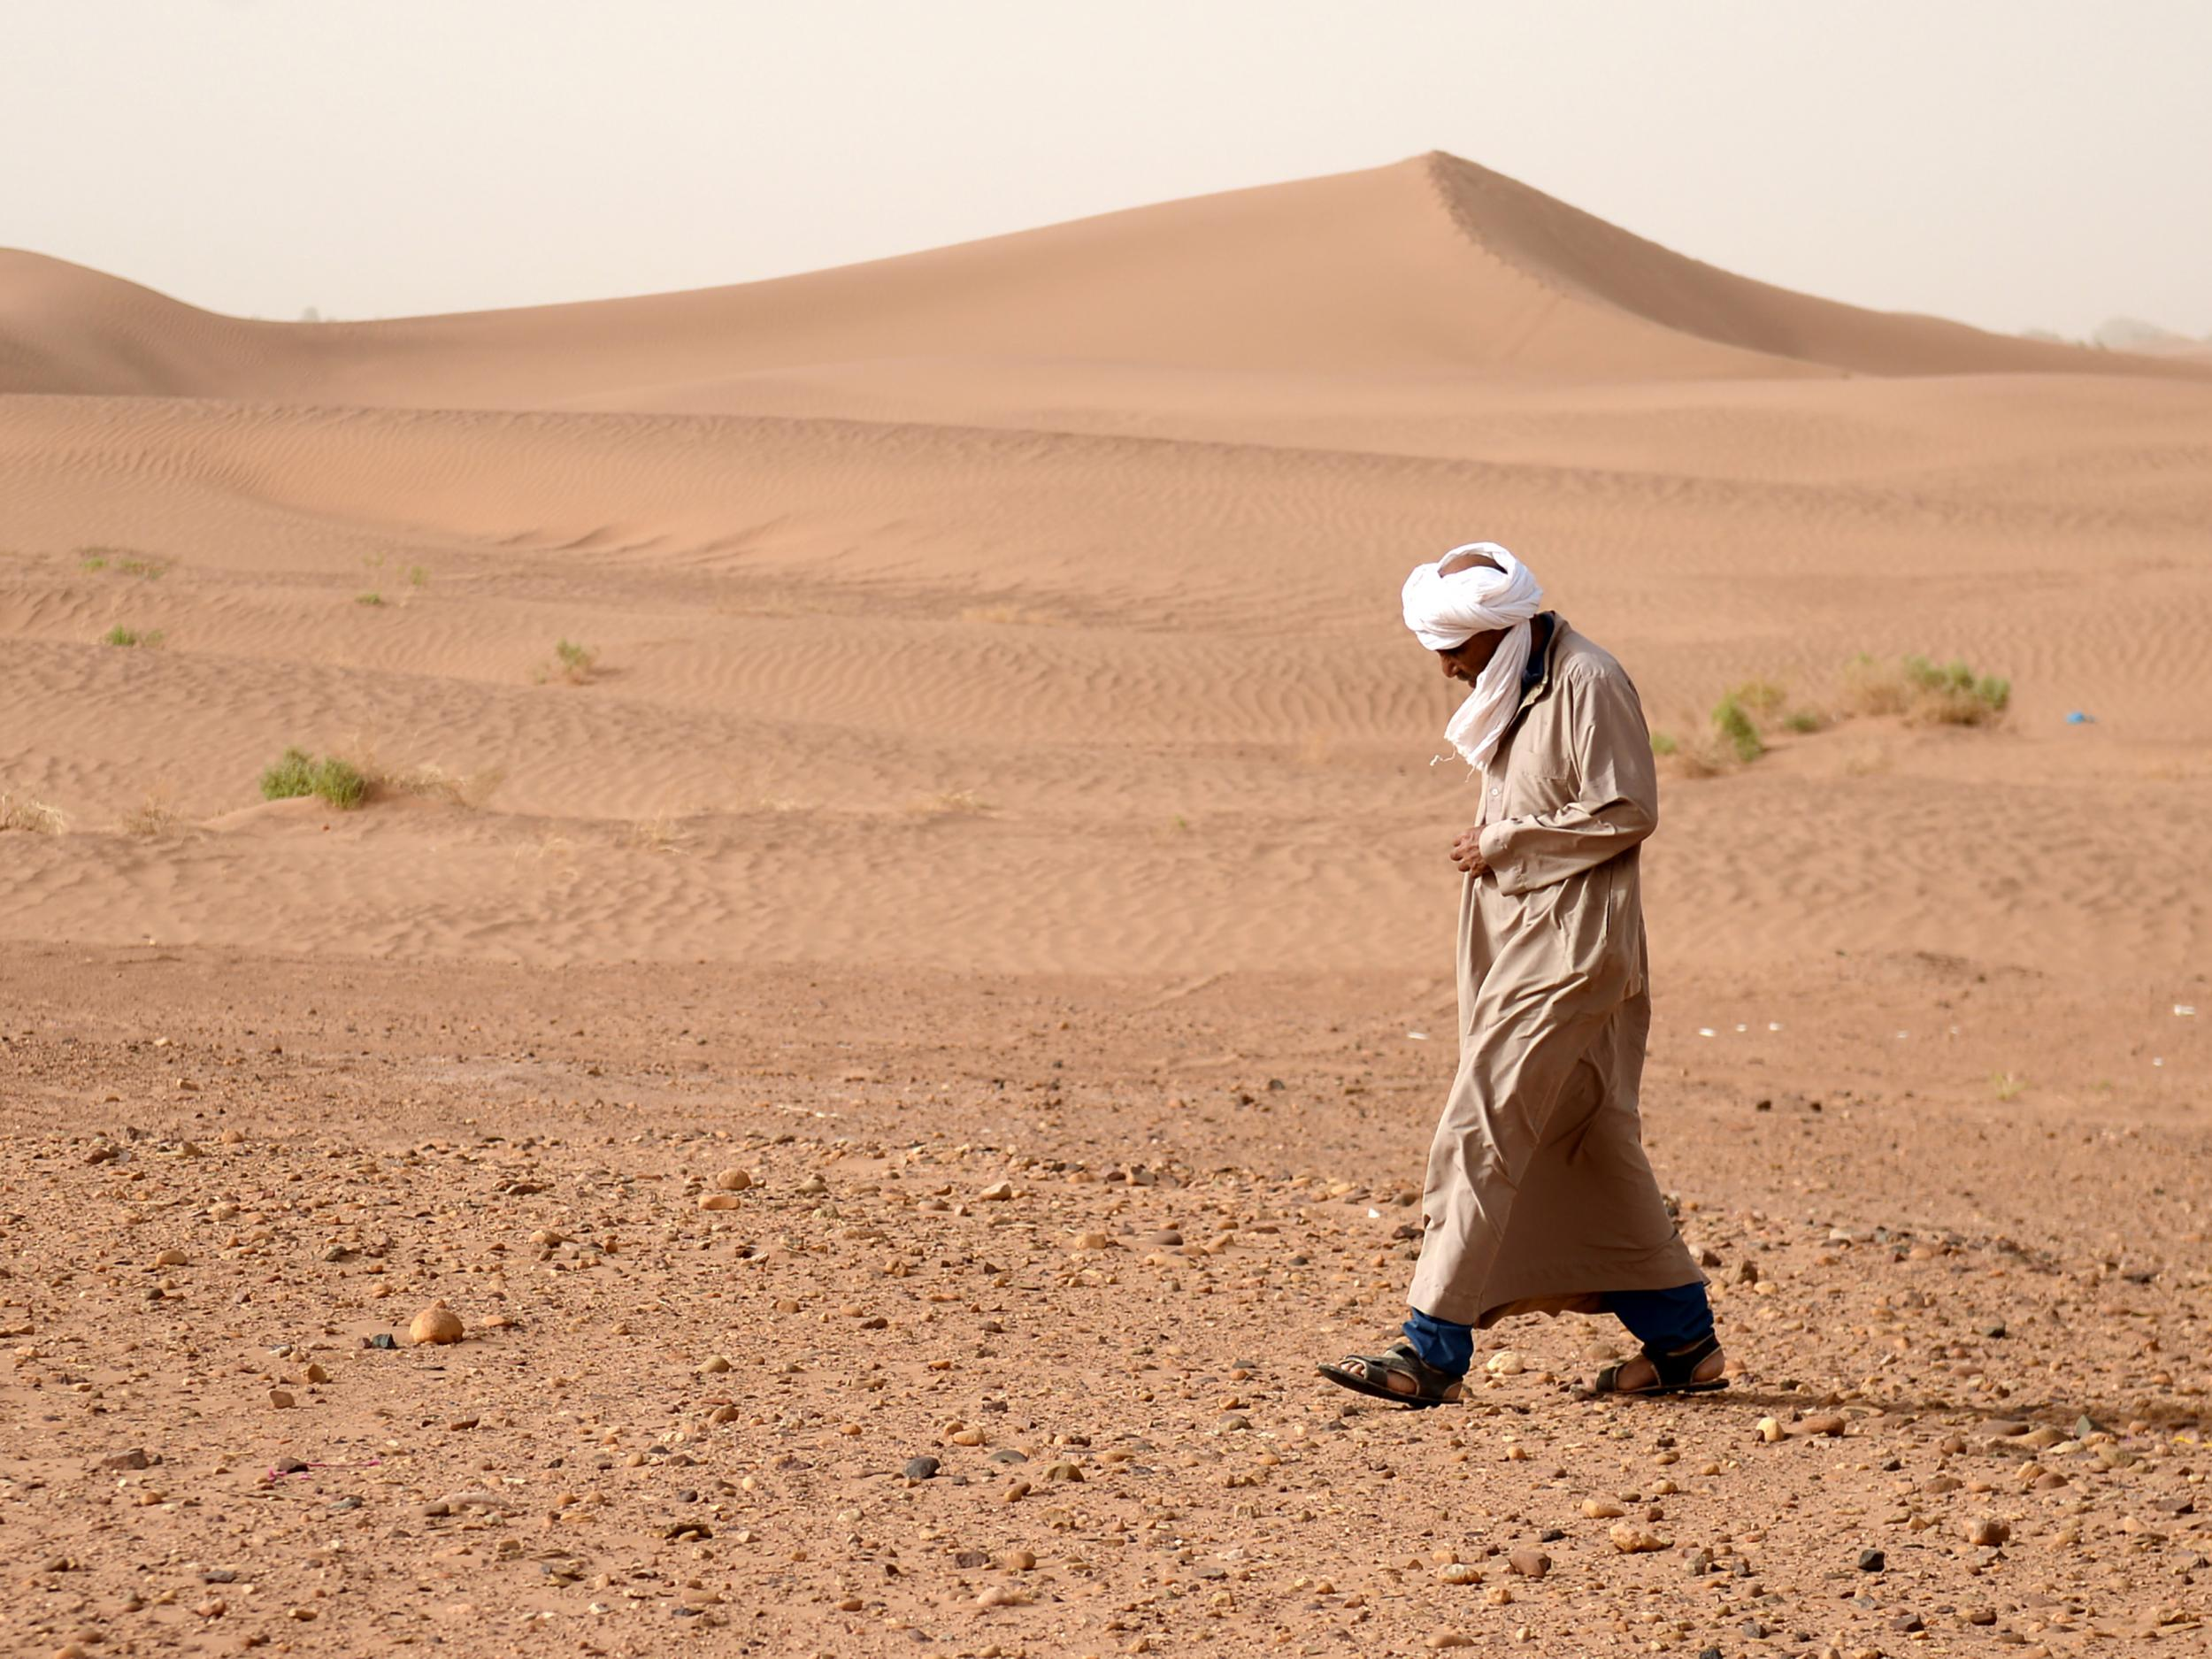 World's largest desert has grown even larger due to climate change ...